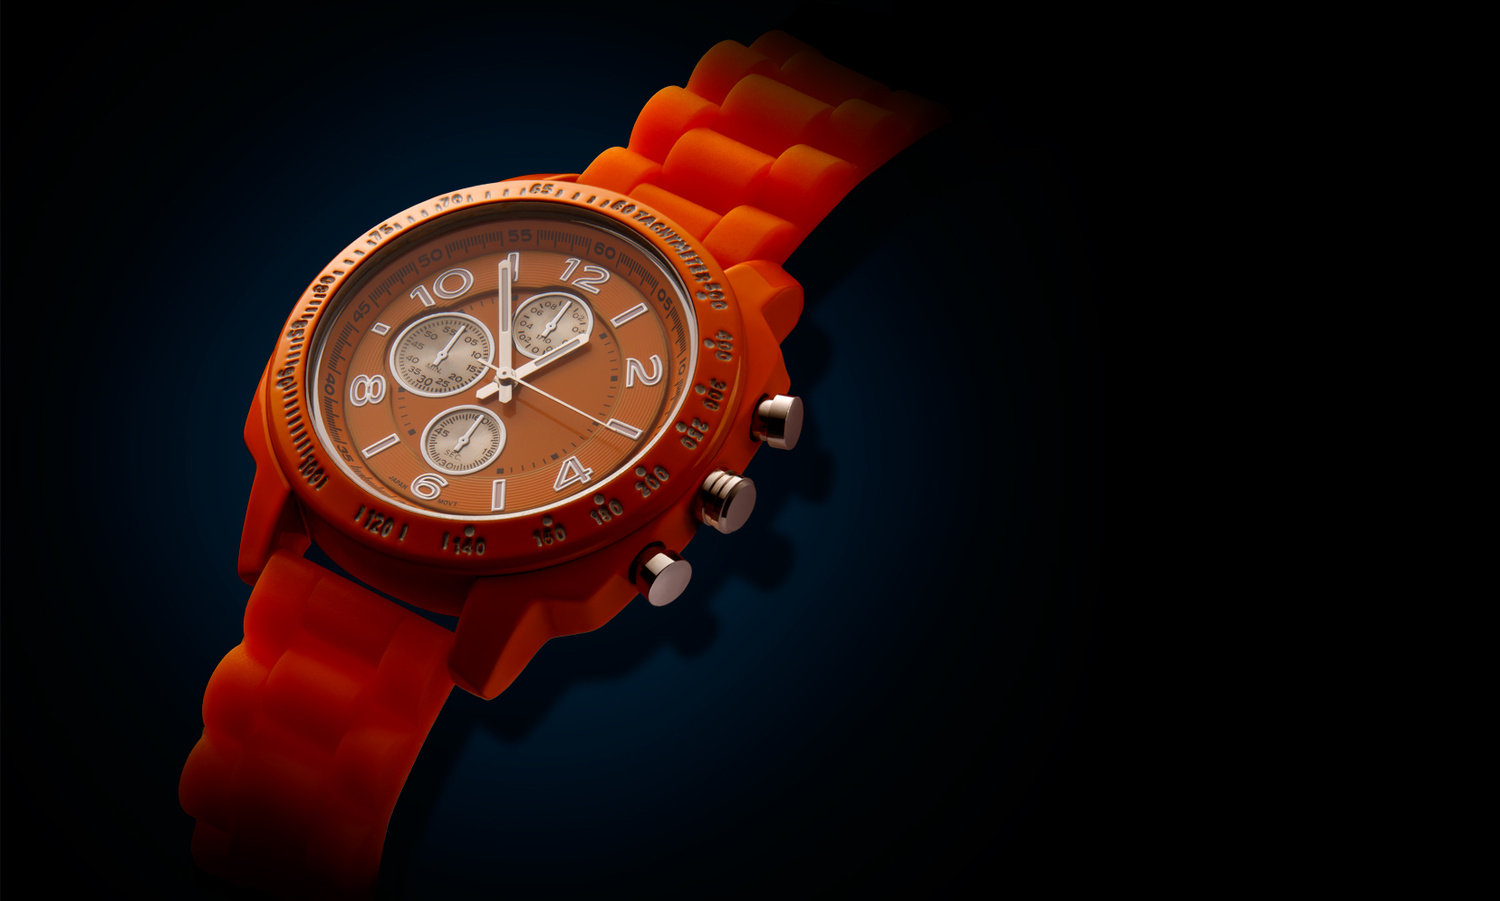 Orange Watch by Vaclav Rus